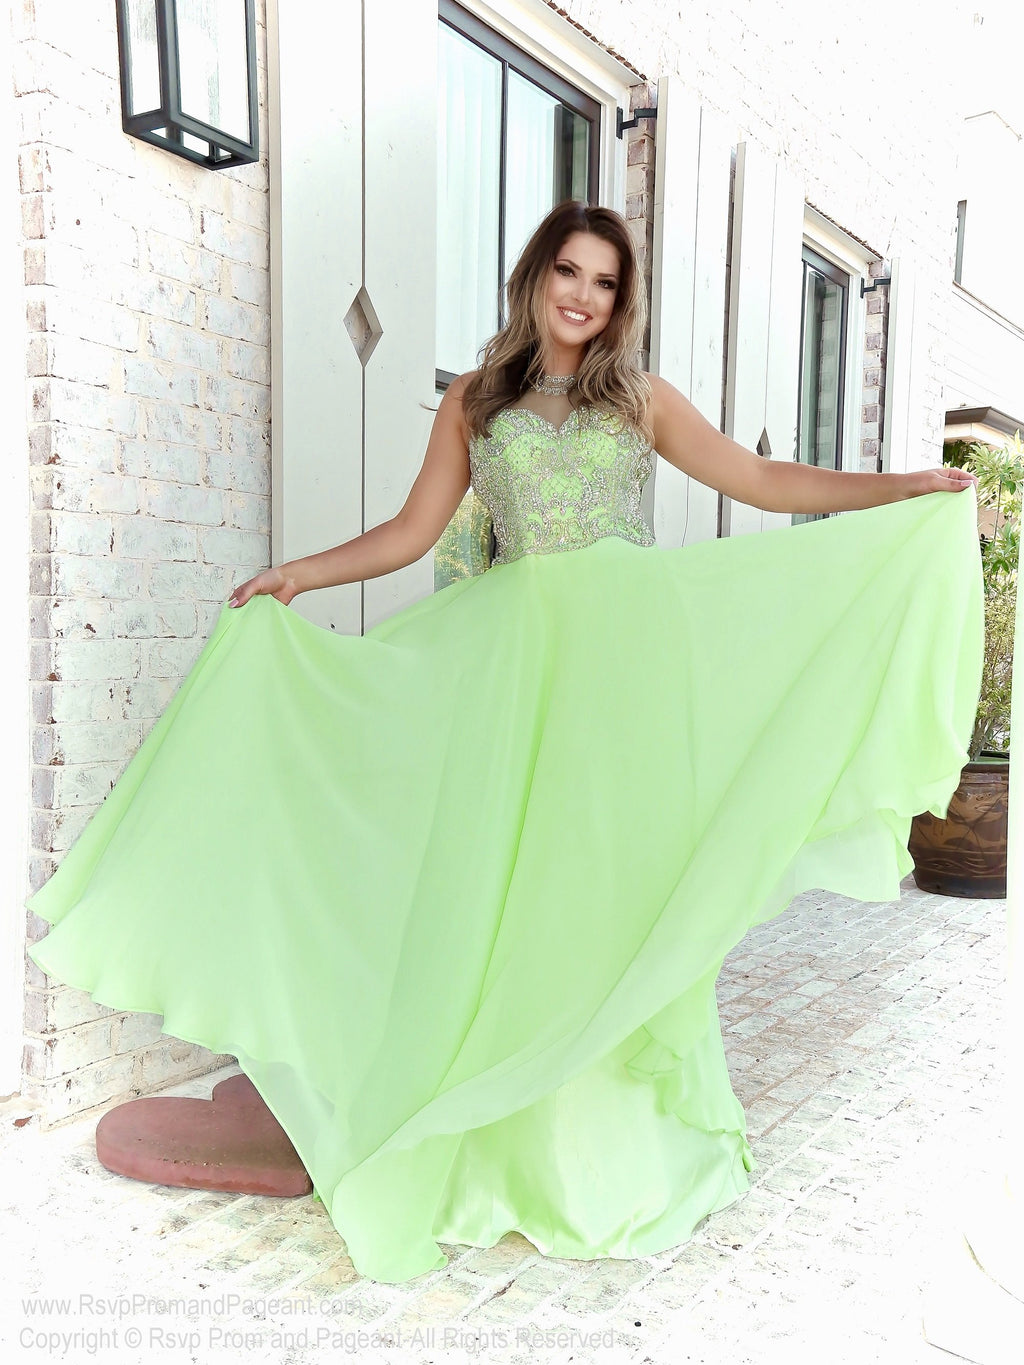 Brunette model in in this gorgeous pastel green prom dress with an open back and flowing chiffon skirt! So elegant and it's at Rsvp Prom and Pageant, your source for the HOTTEST Prom and Pageant Dresses and exclusive evening gowns and located in Atlanta, Georgia!